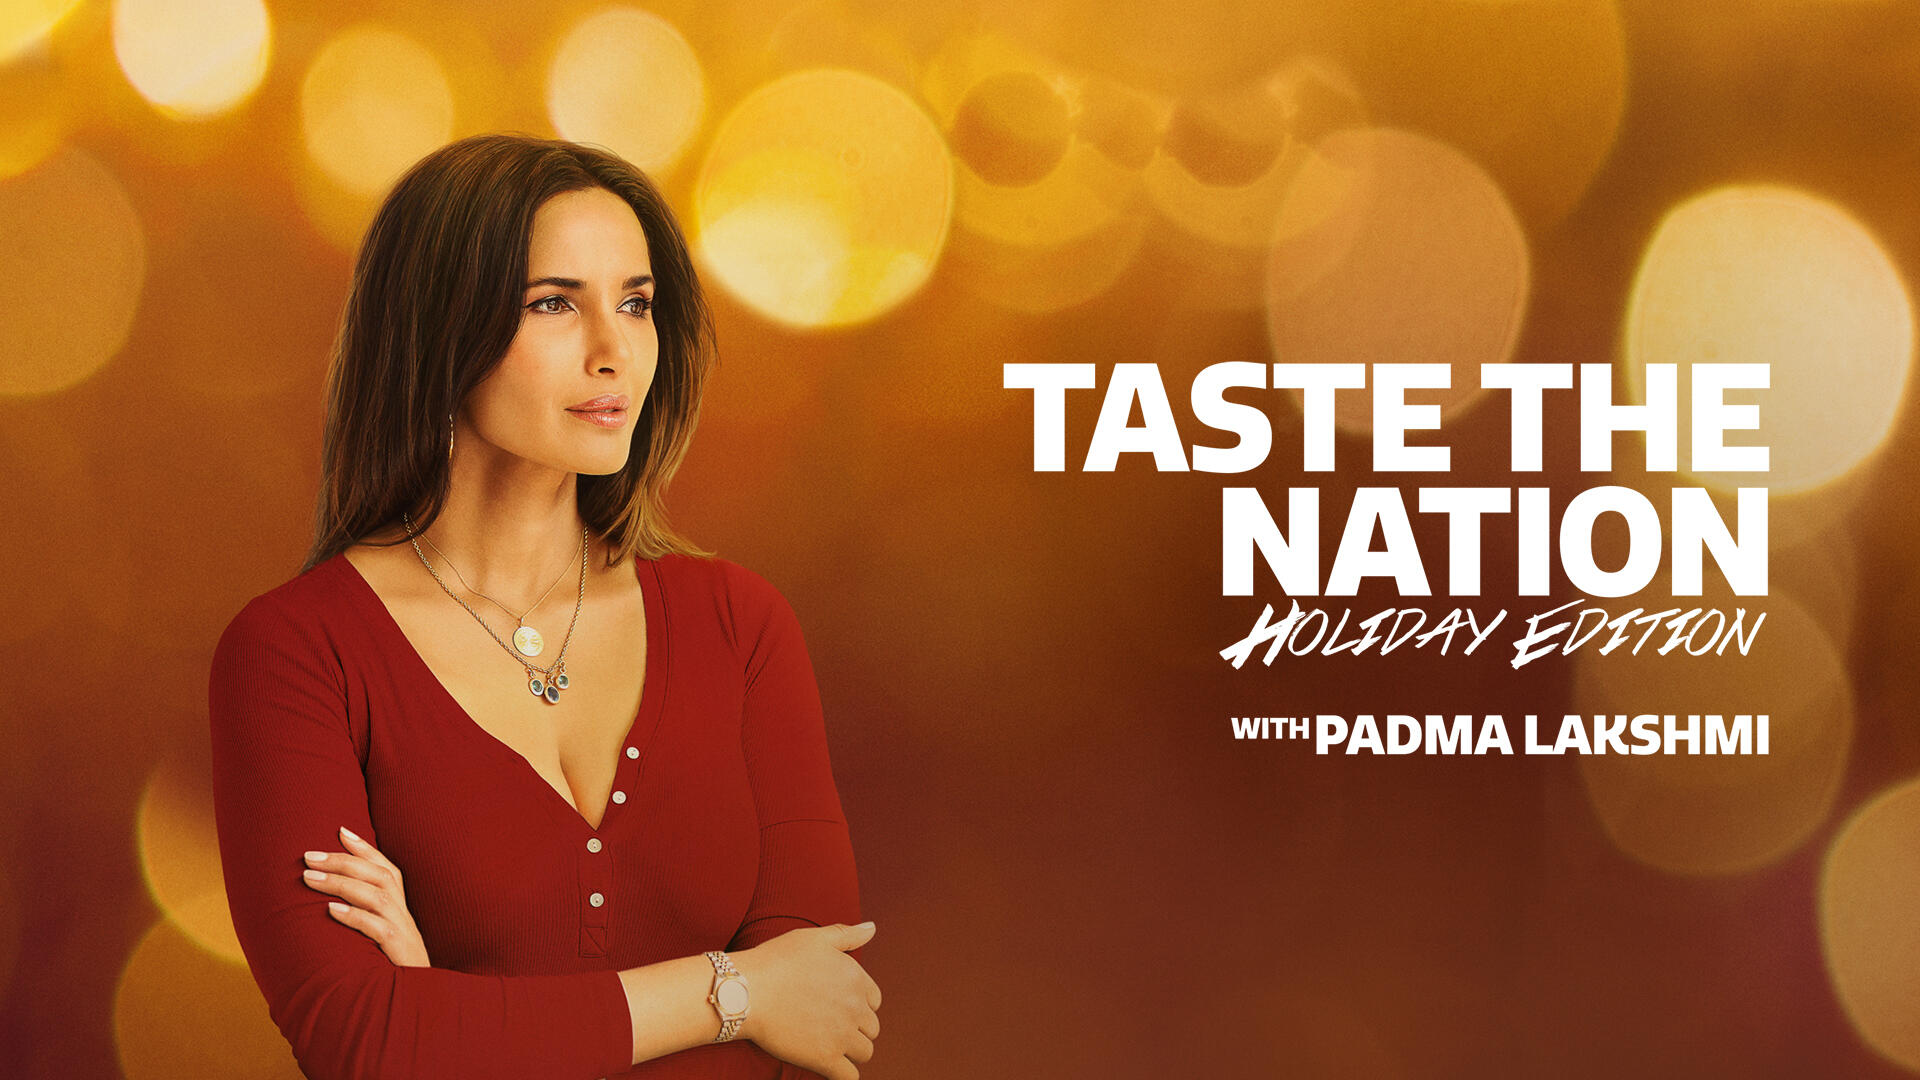 """Taste The Nation -- In """"Taste the Nation,"""" award-winning host, executive producer and cookbook author Padma Lakshmi, who recently received her 3rd Emmy nomination, takes audiences on a journey across America, exploring the rich and diverse food culture of various immigrant groups, seeking out the people who have so heavily shaped what American food is today. From indigenous communities to recent immigrant arrivals, Padma breaks bread with Americans across the nation to uncover the roots and relationship between our food, our humanity and our history - ultimately revealing stories that challenge notions of identity, belonging, and what it means to be American. """"Taste the Nation"""" returns this Fall for a special 4-part """"Holiday Edition"""" where each episode will highlight unique traditions through the lens of a different immigrant culture and city, like Korean New Year in Los Angeles and Cuban Christmas in Miami. Padma Lakshmi, shown. (Courtesy of Hulu)"""